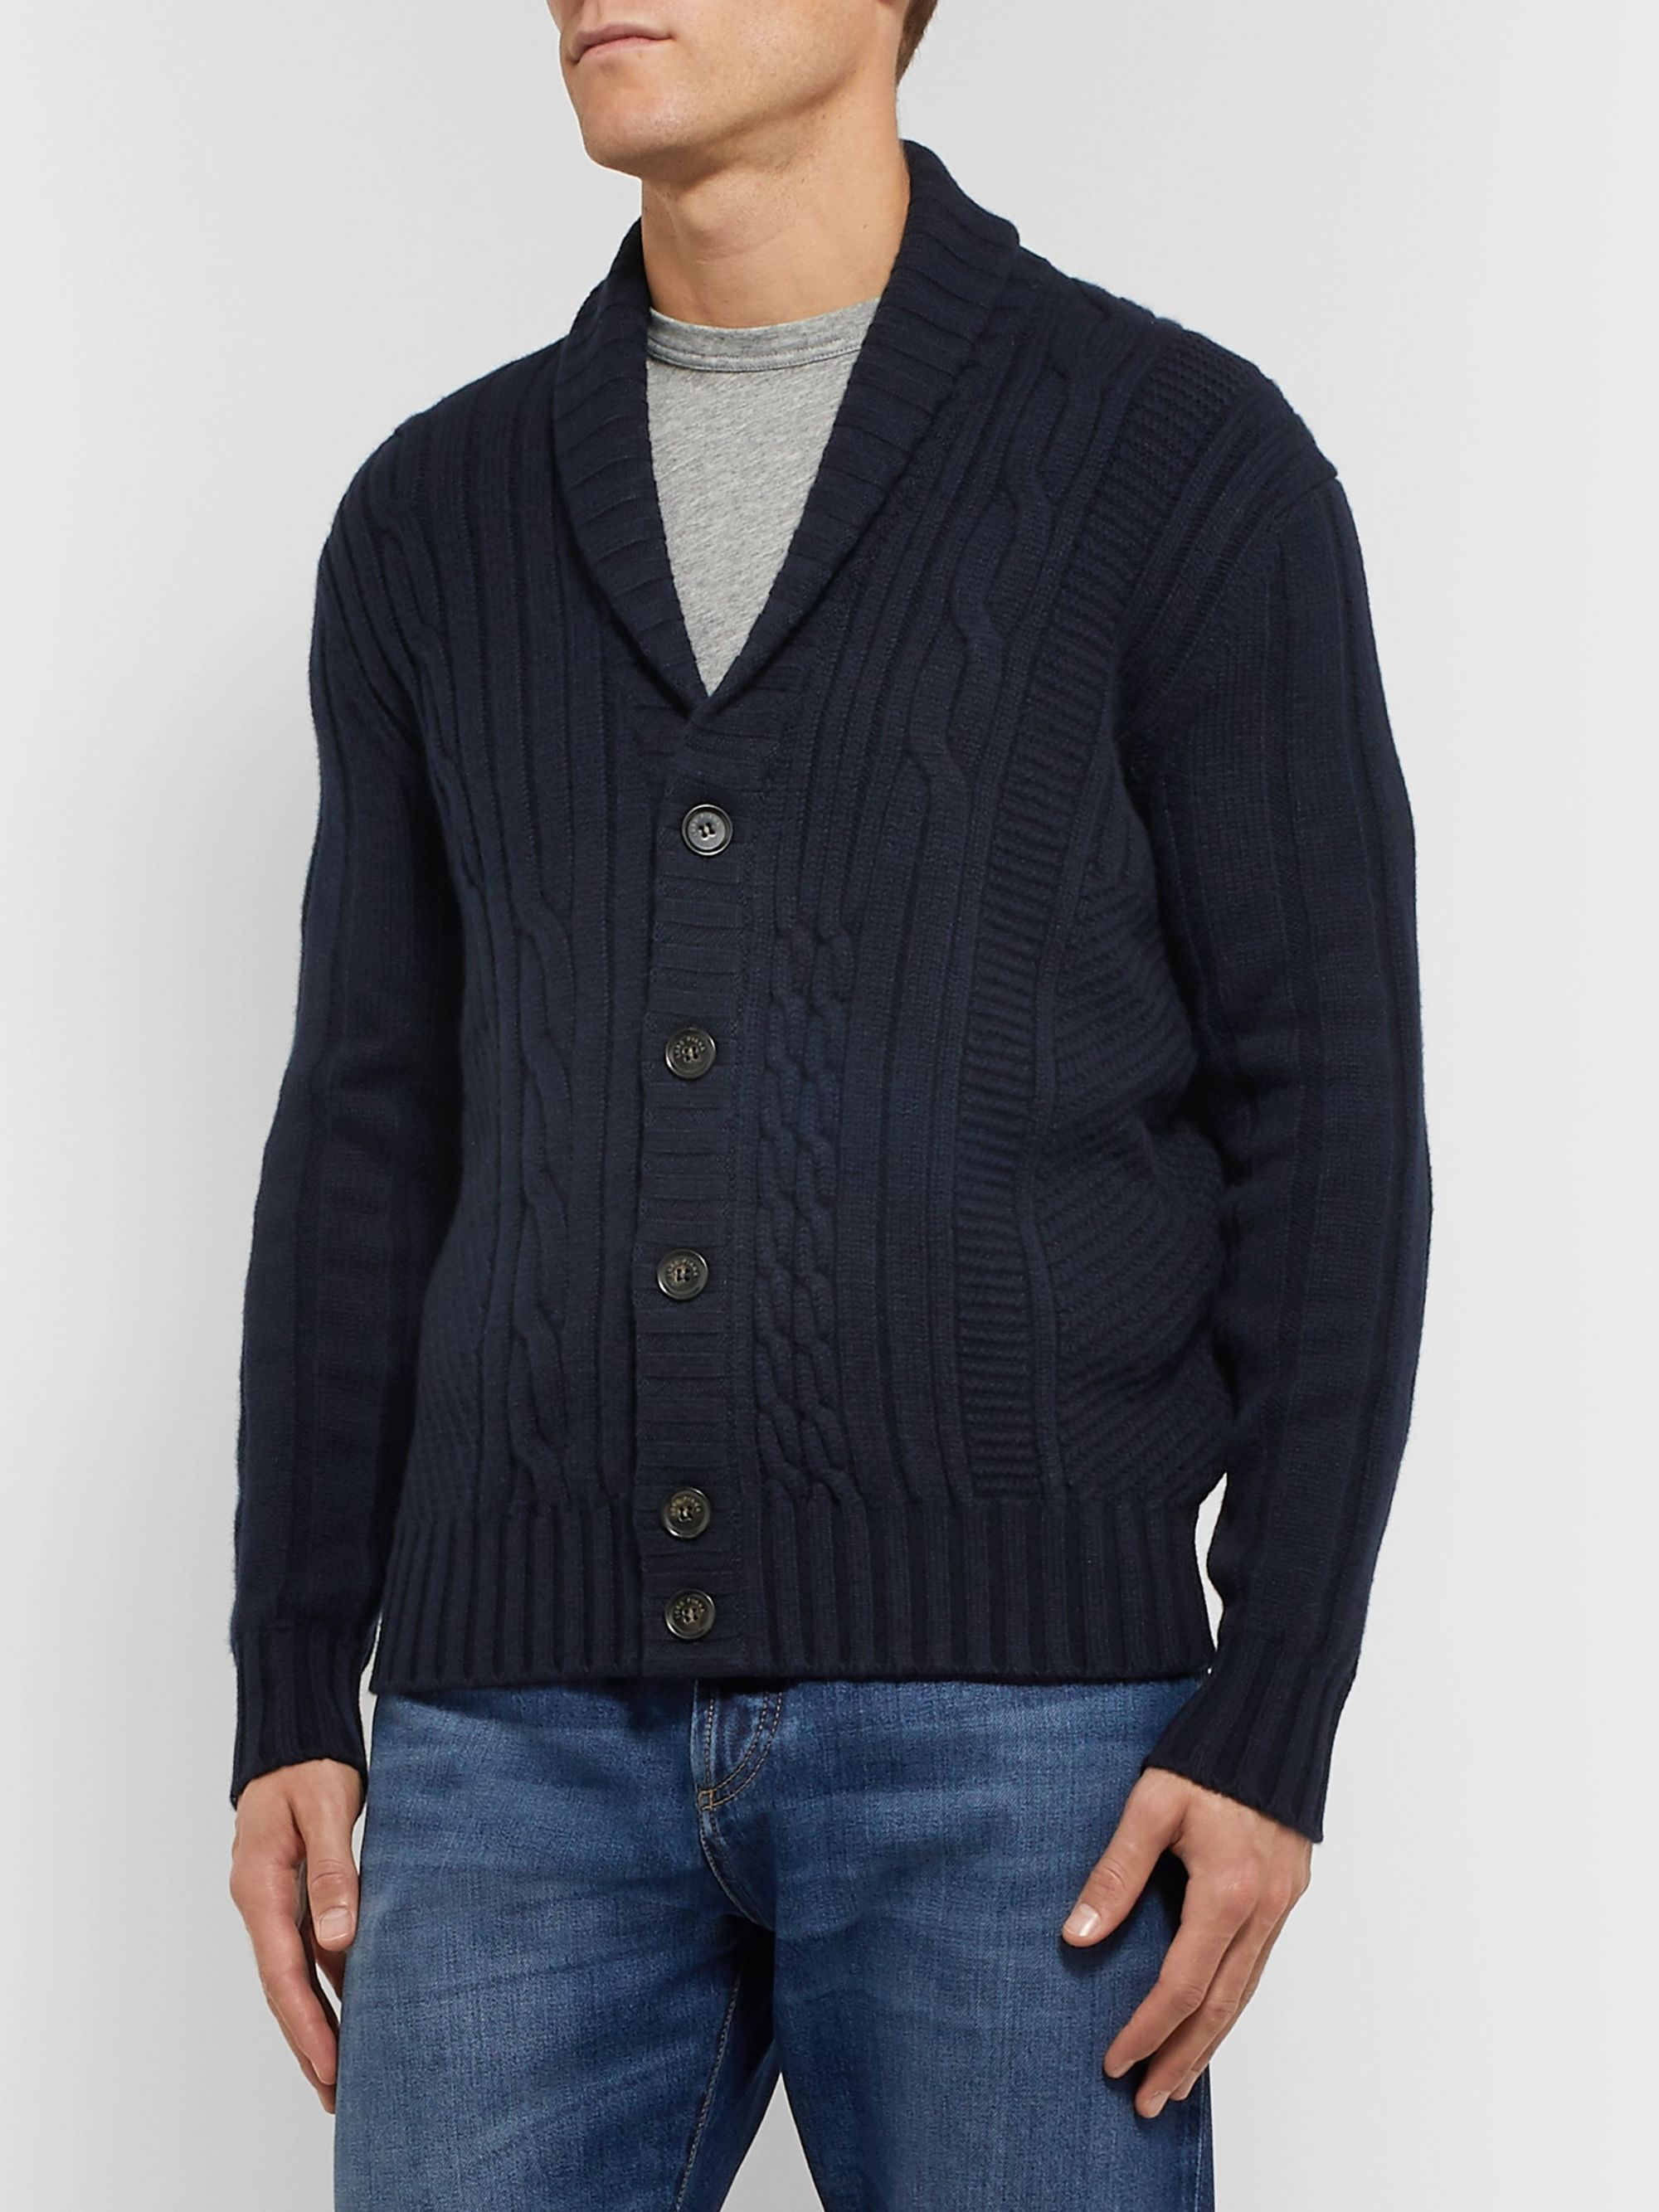 Loro Piana Cable-Knit Baby Cashmere Cardigan